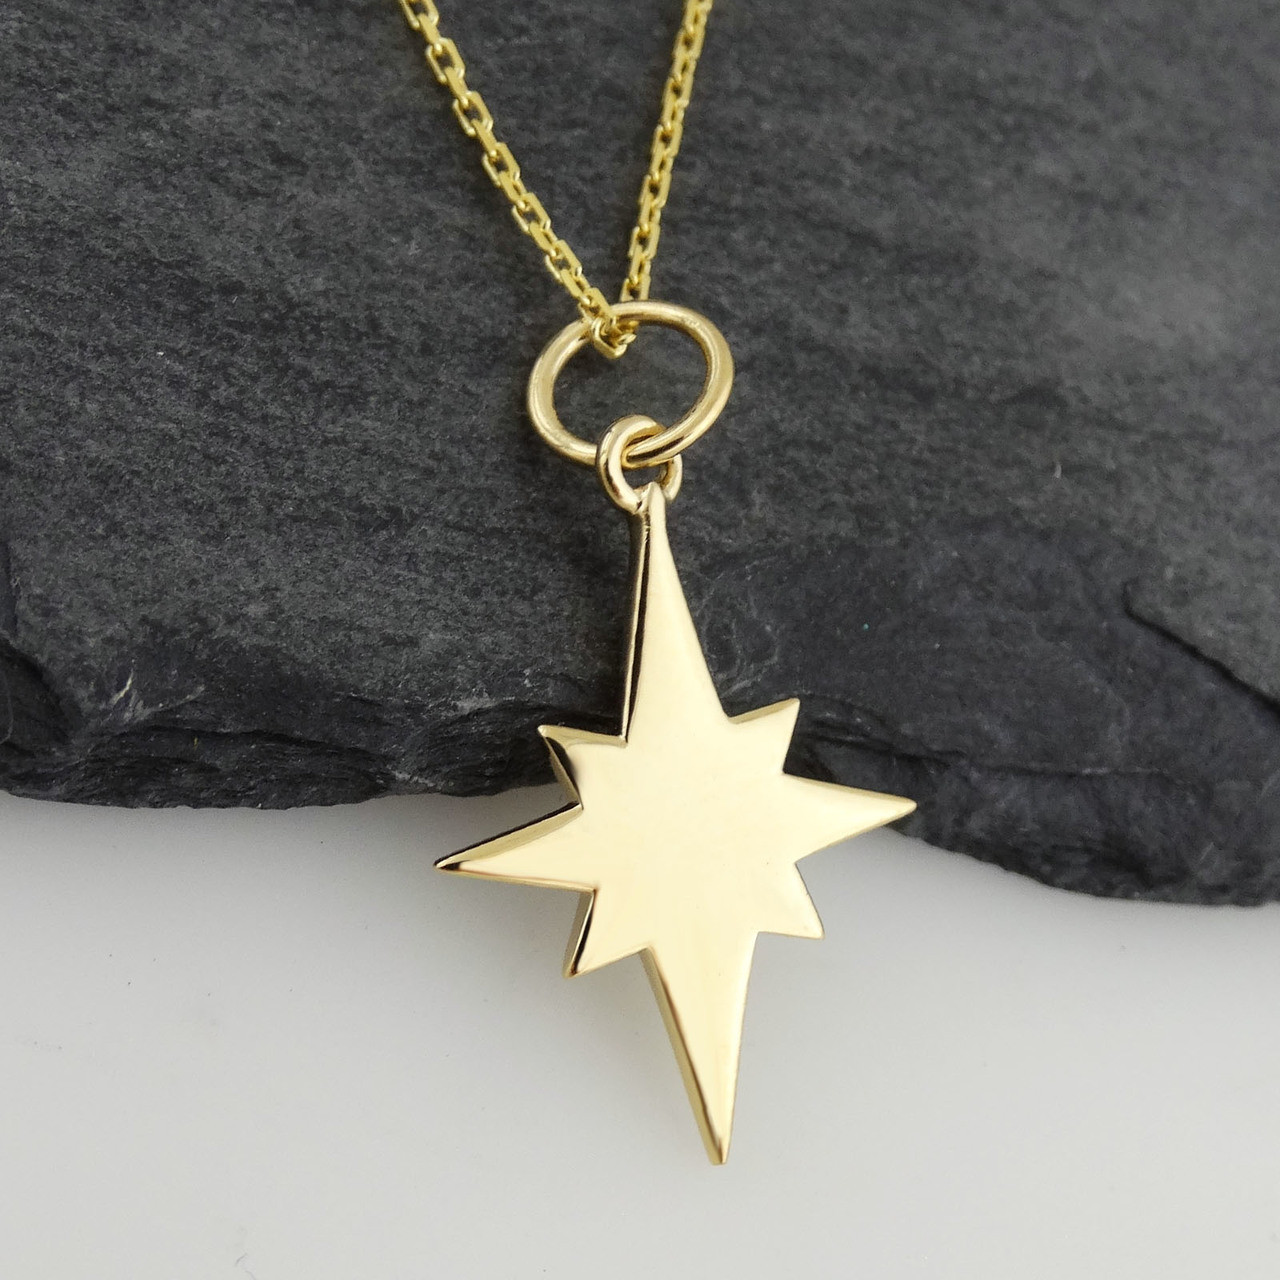 necklace silver pole north star item pendant fine constellation main